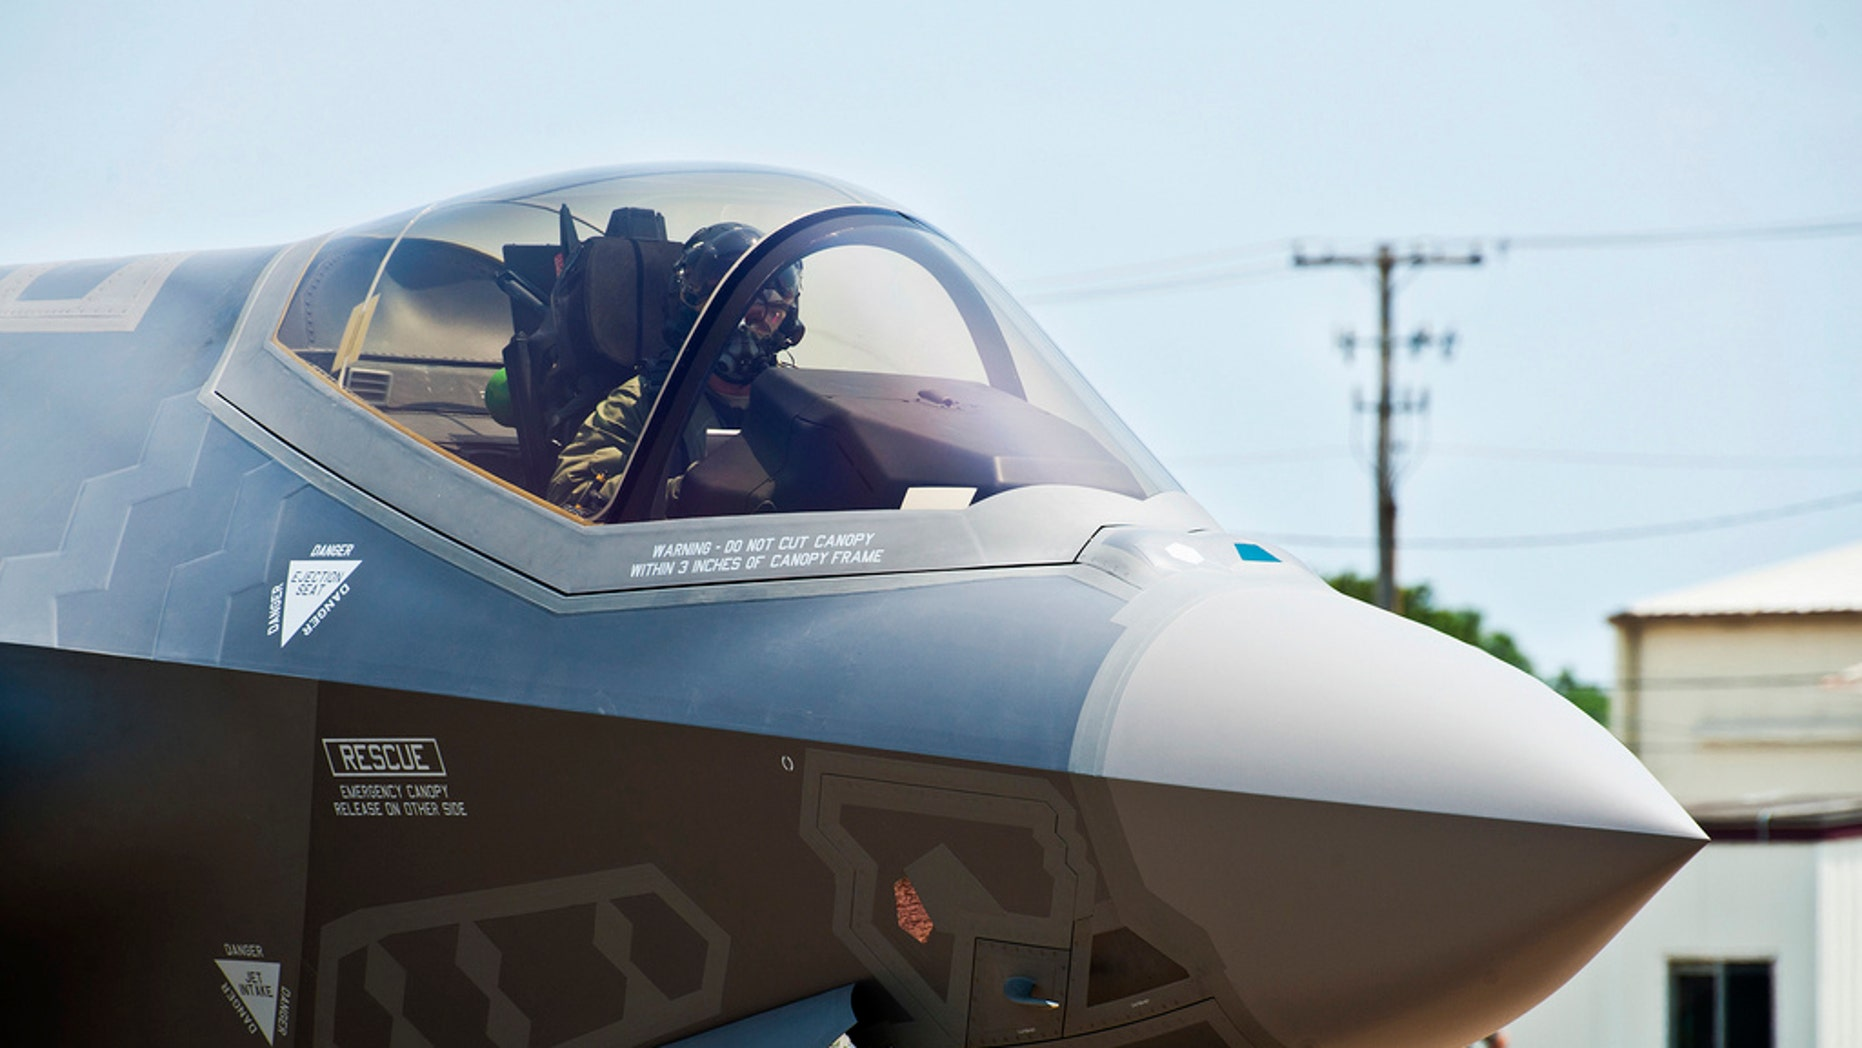 July 14, 2011: Members of the 33rd Fighter Wing get a look at the Department fo Defense's newest aircraft, the U.S. Air Force F-35 Lightning II joint strike fighter, on arrival to its new home at Eglin Air Force Base, Fla.